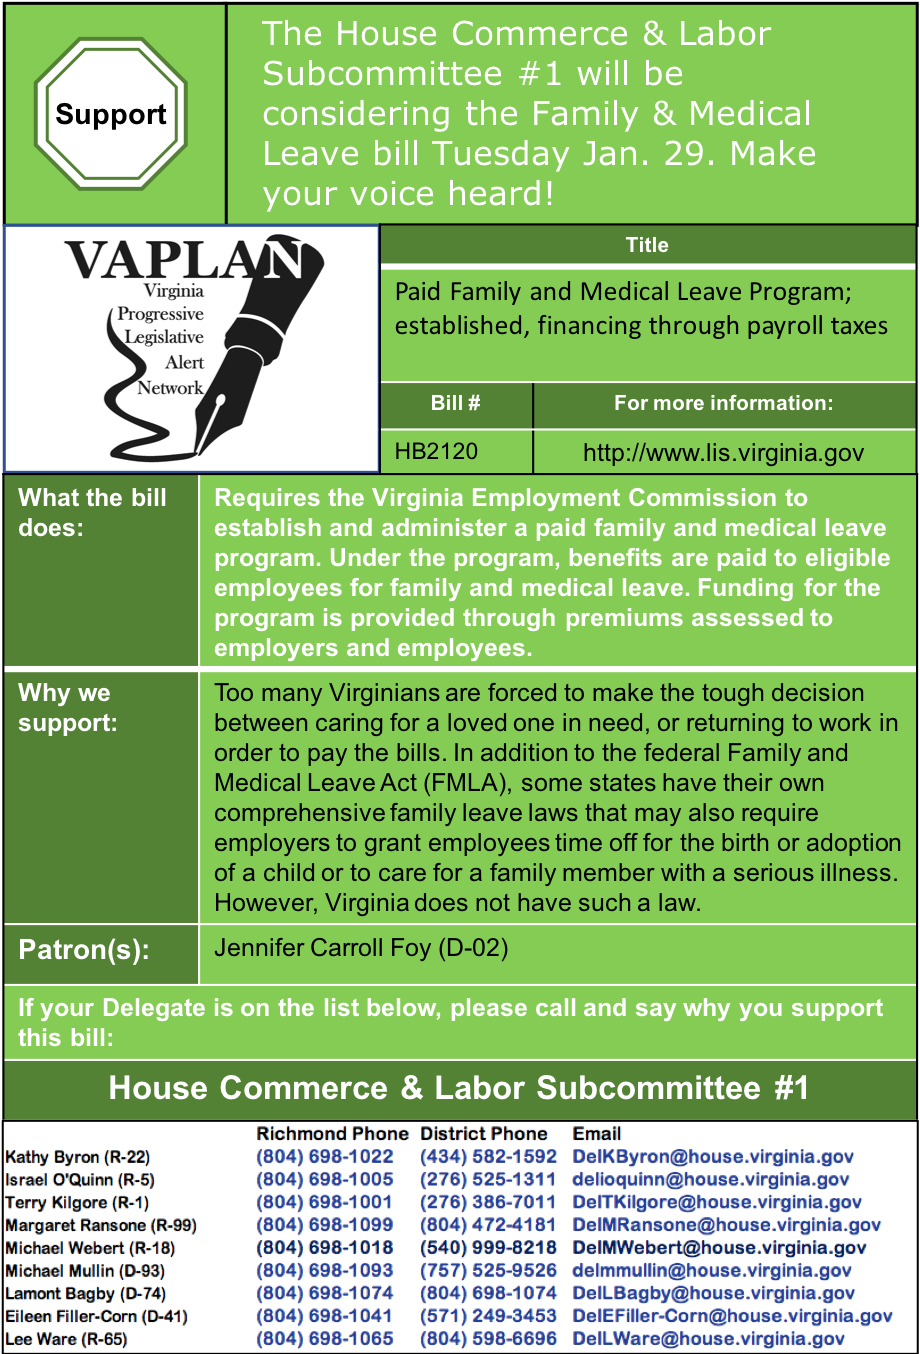 ALERT: House Commerce & Labor Subcommittee #1 considers Virginia Family Medical Leave program Tuesday Jan. 29.